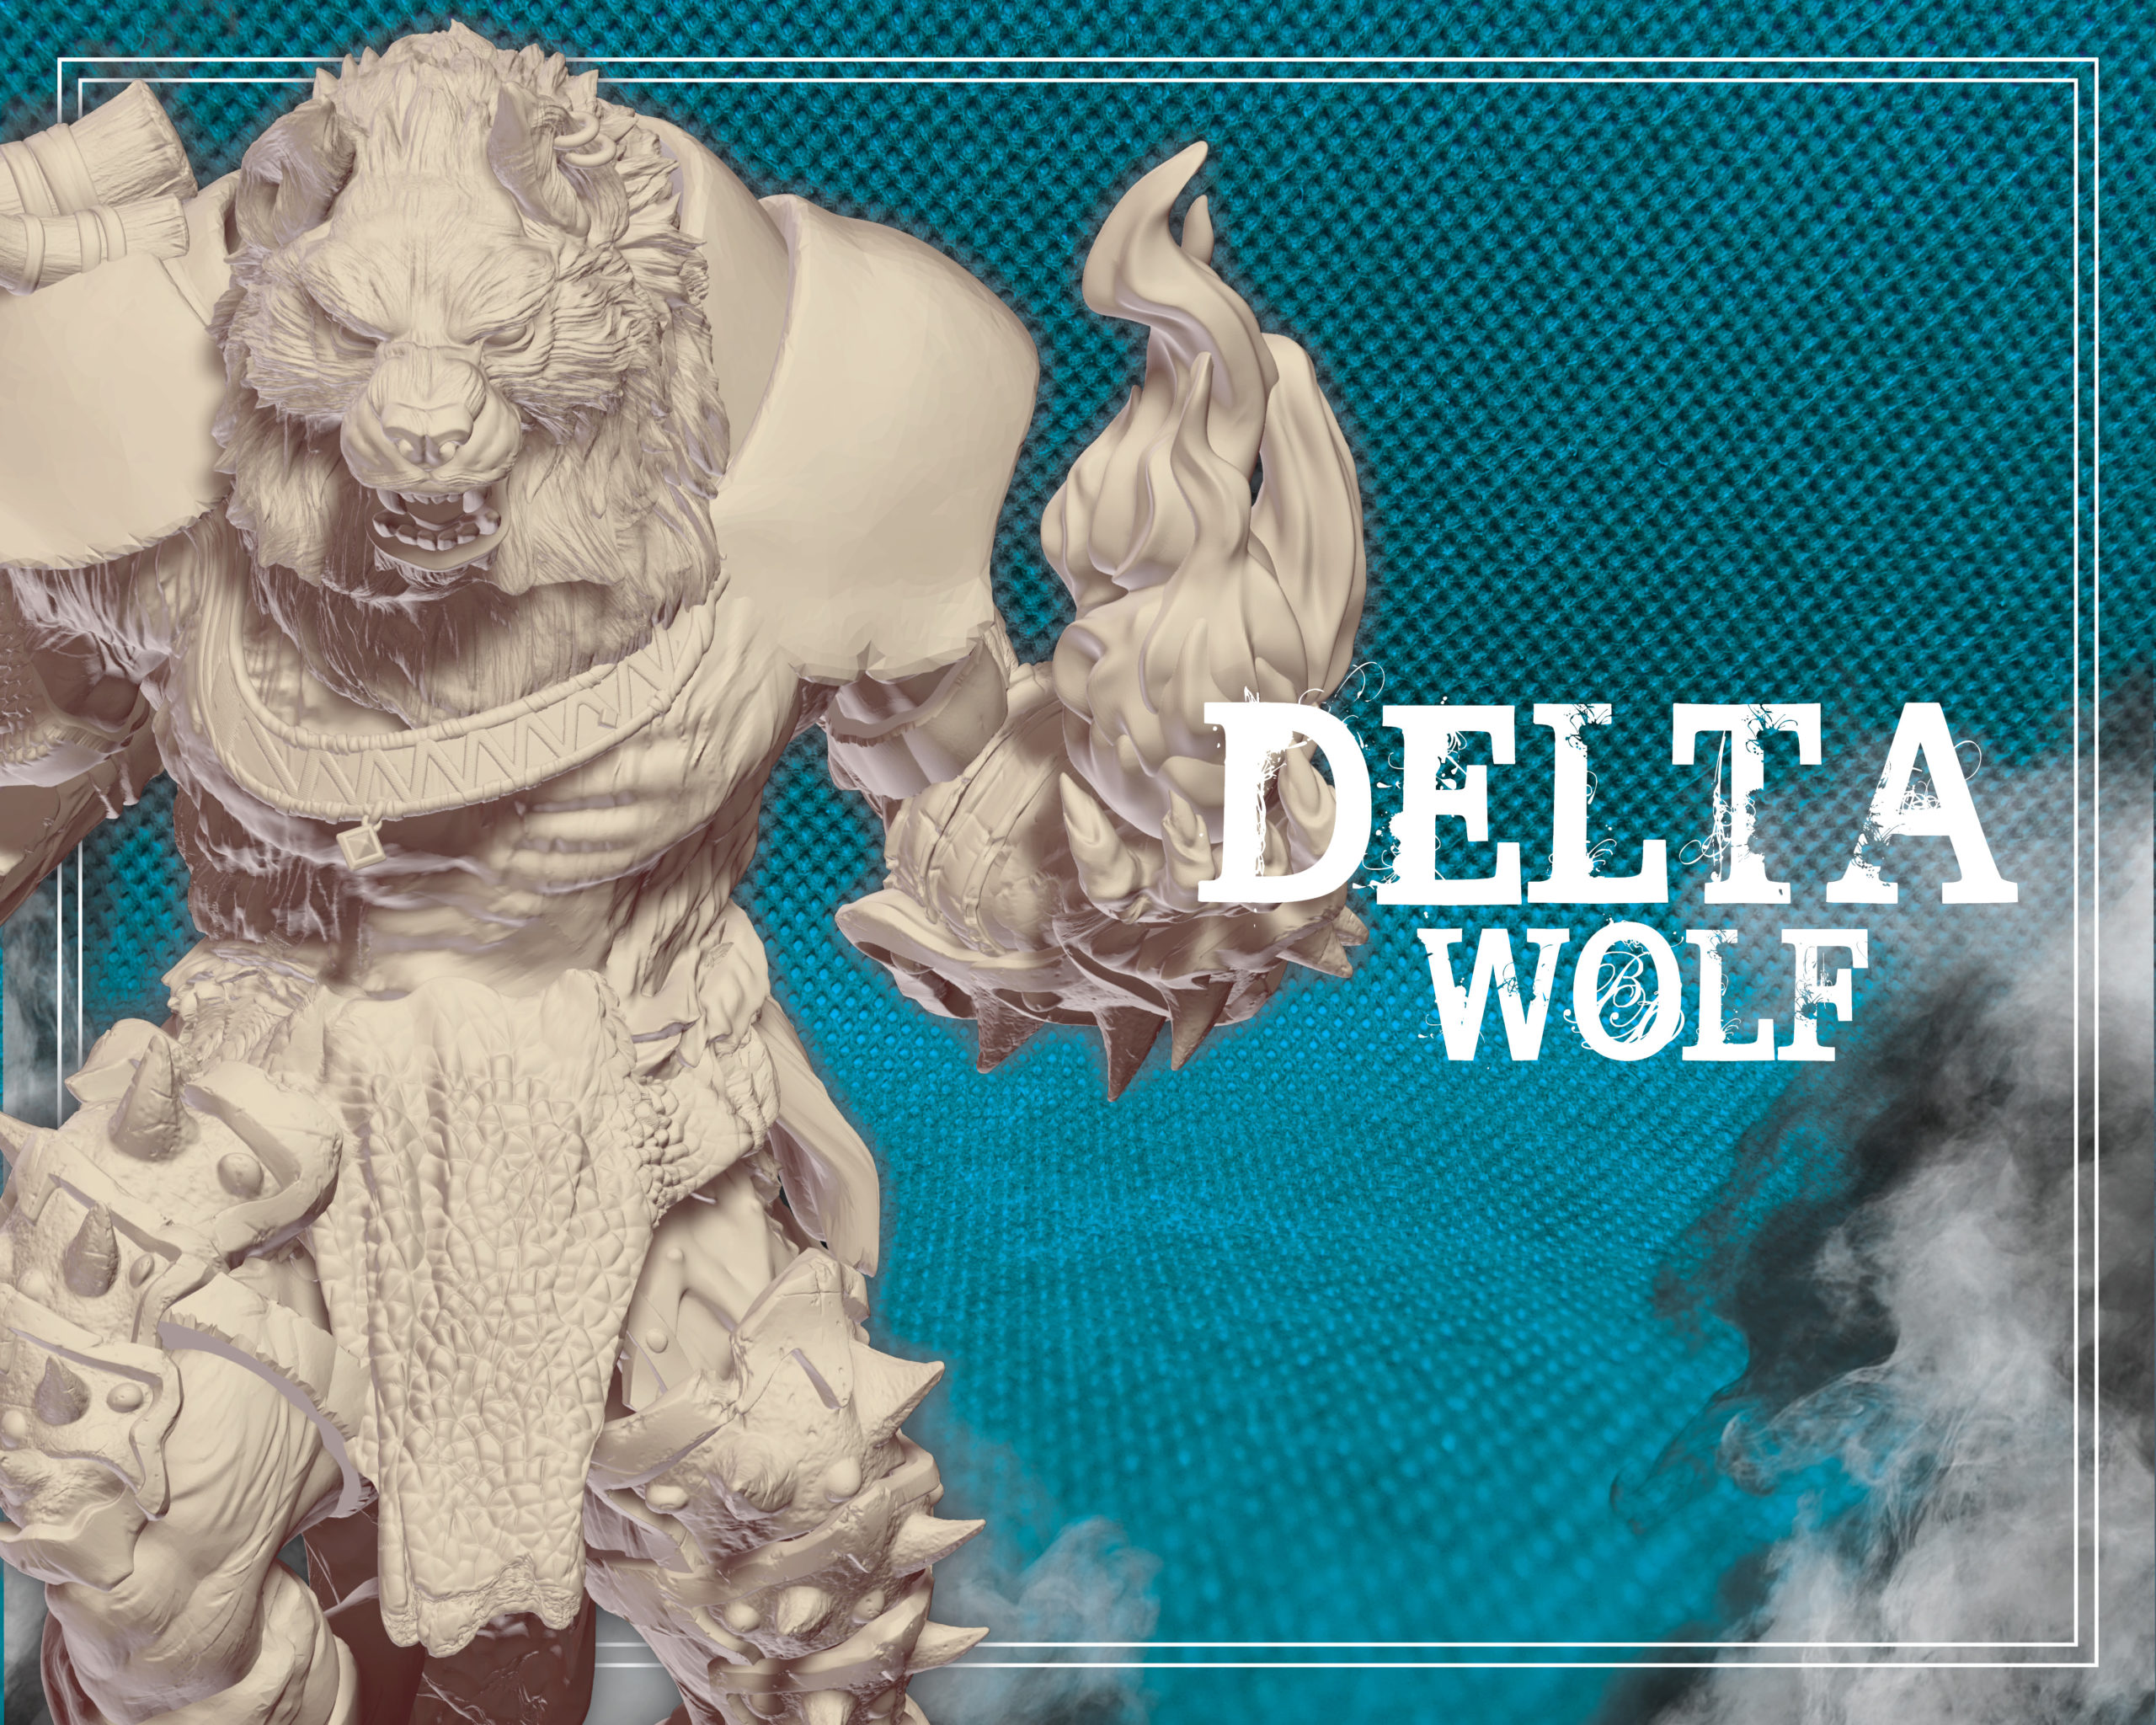 tier delta wolf wolfmaker3d gift subscribe patreon